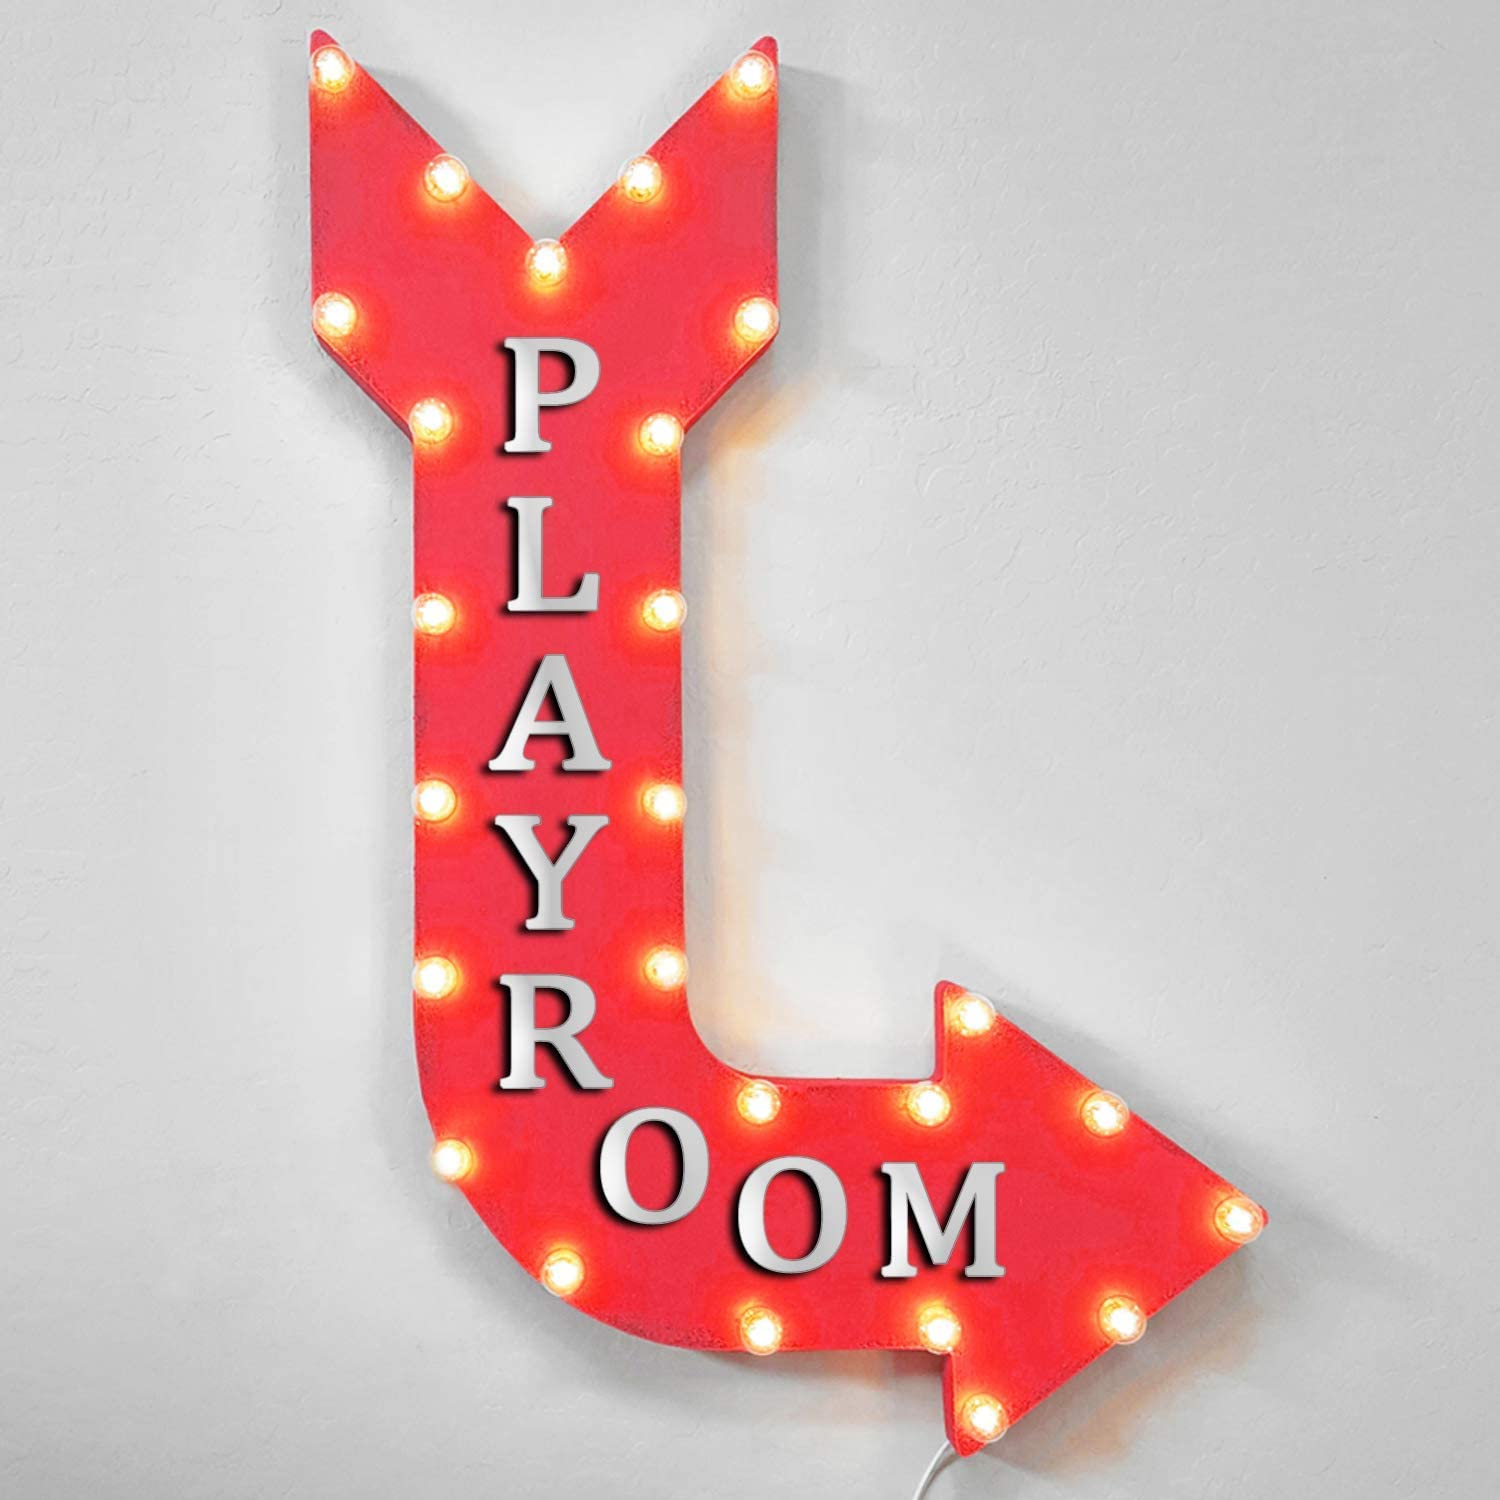 Playroom Rustic Metal Marquee Light Up Arrow Sign Gray Battery Operated Home Kitchen Amazon Com